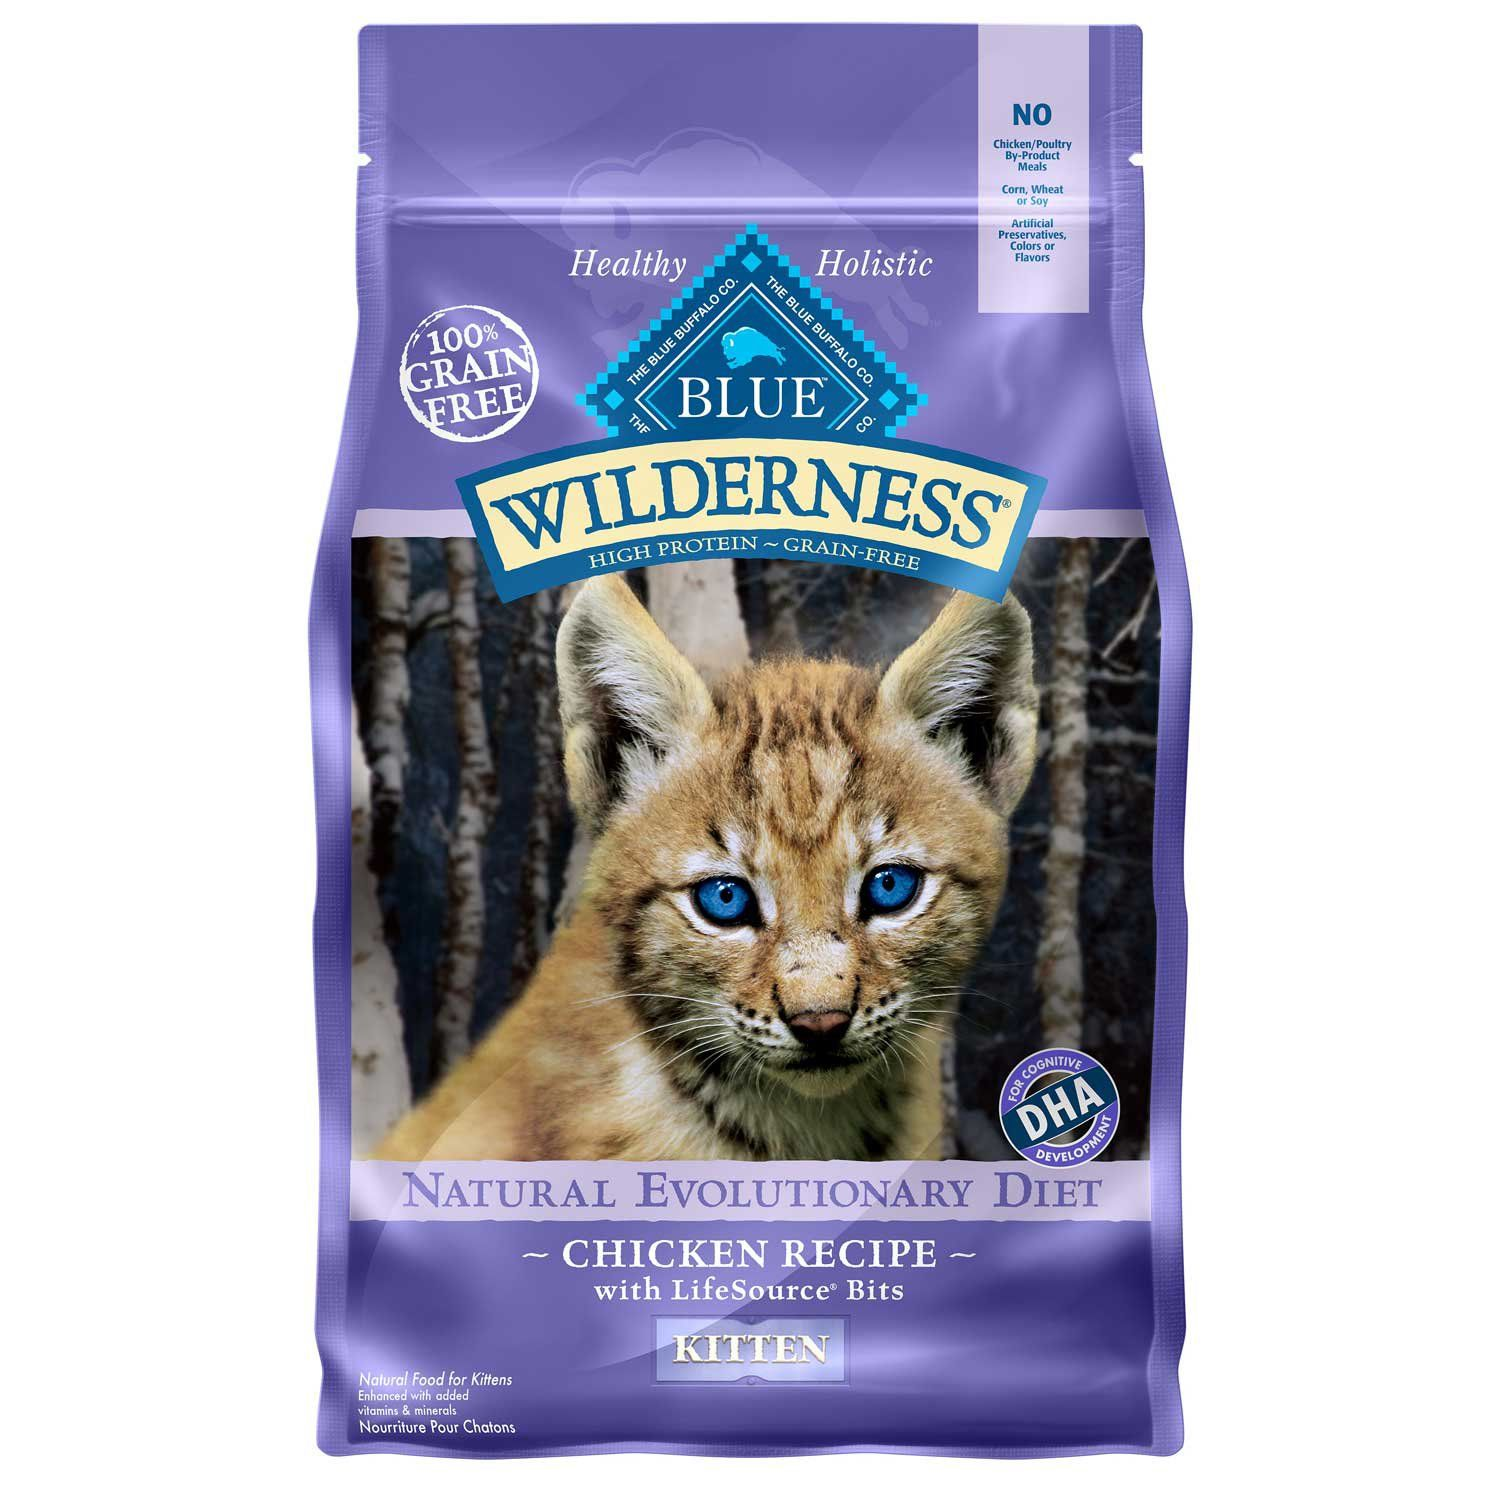 Blue Buffalo Blue Wilderness Kitten Chicken Recipe Dry Cat Food 2